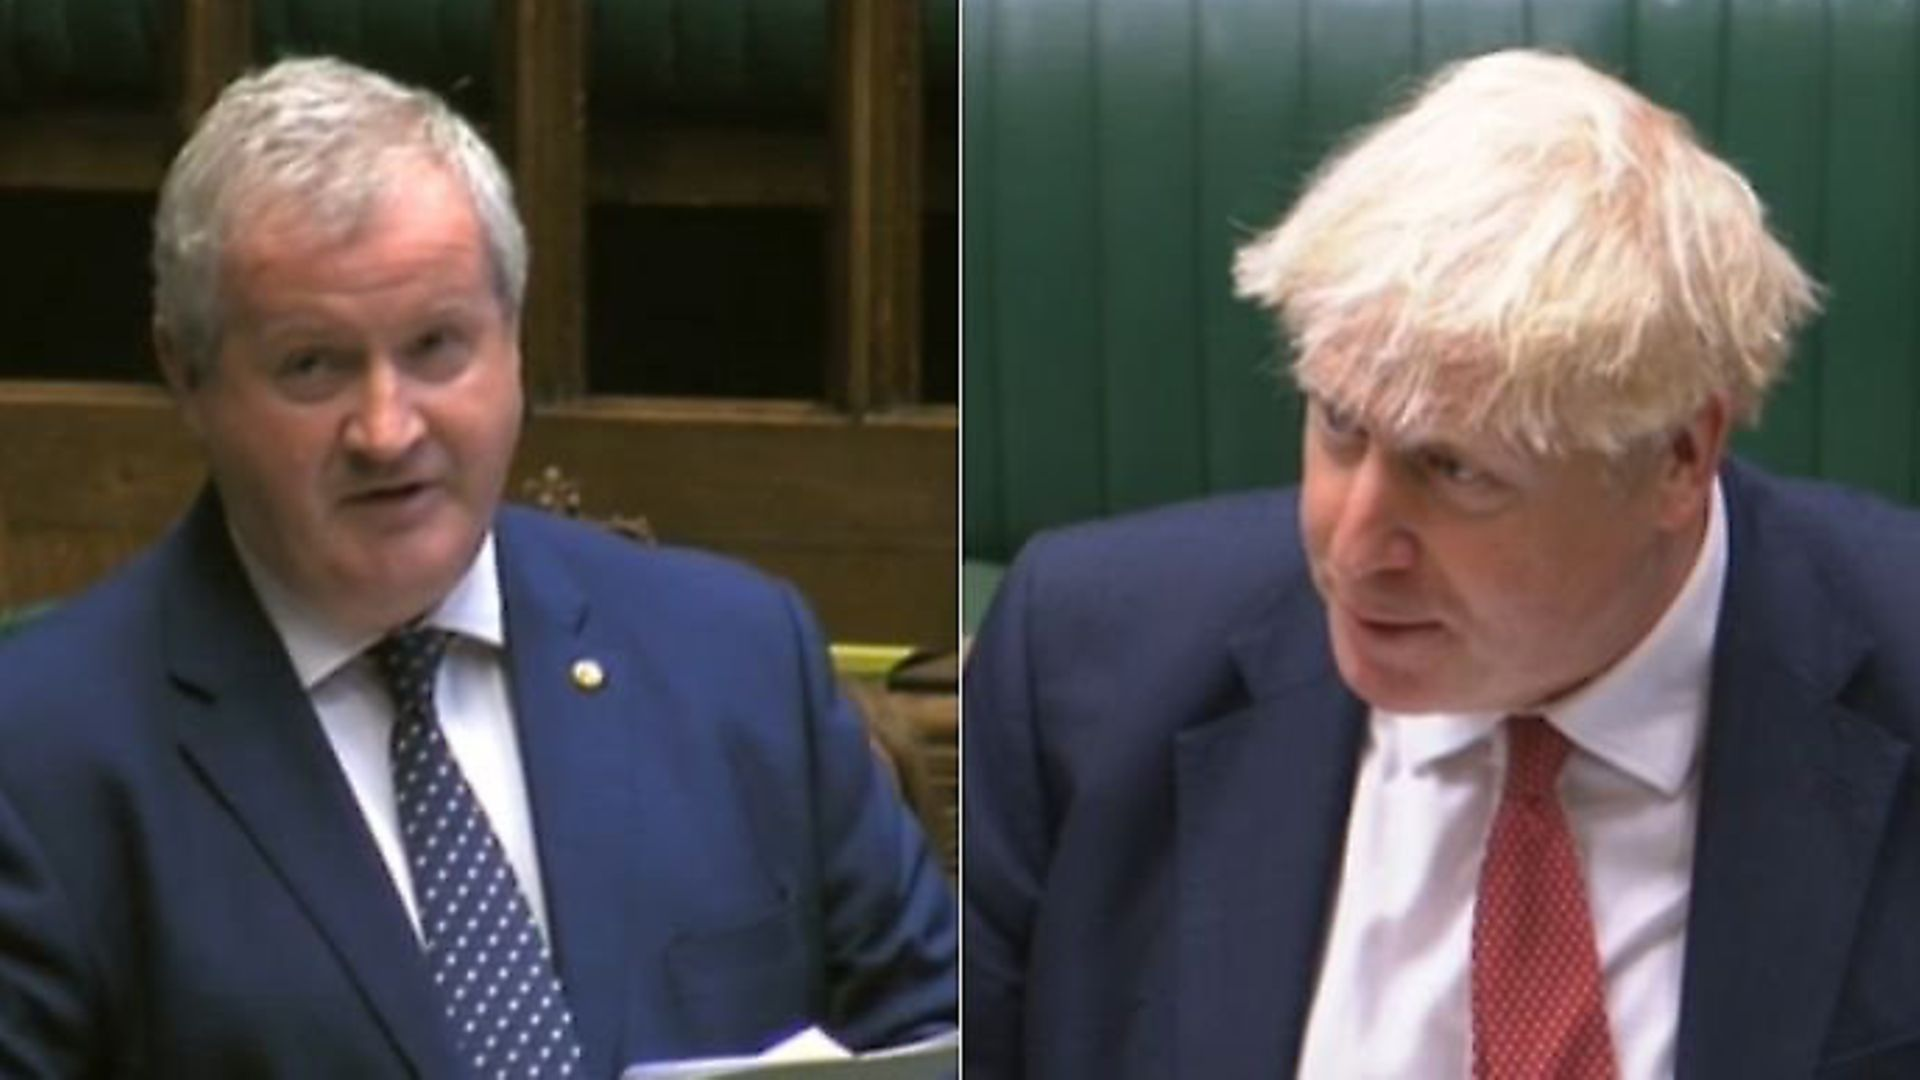 Ian Blackford confronts Boris Johnson in the House of Commons. Photograph: Parliament TV. - Credit: Archant